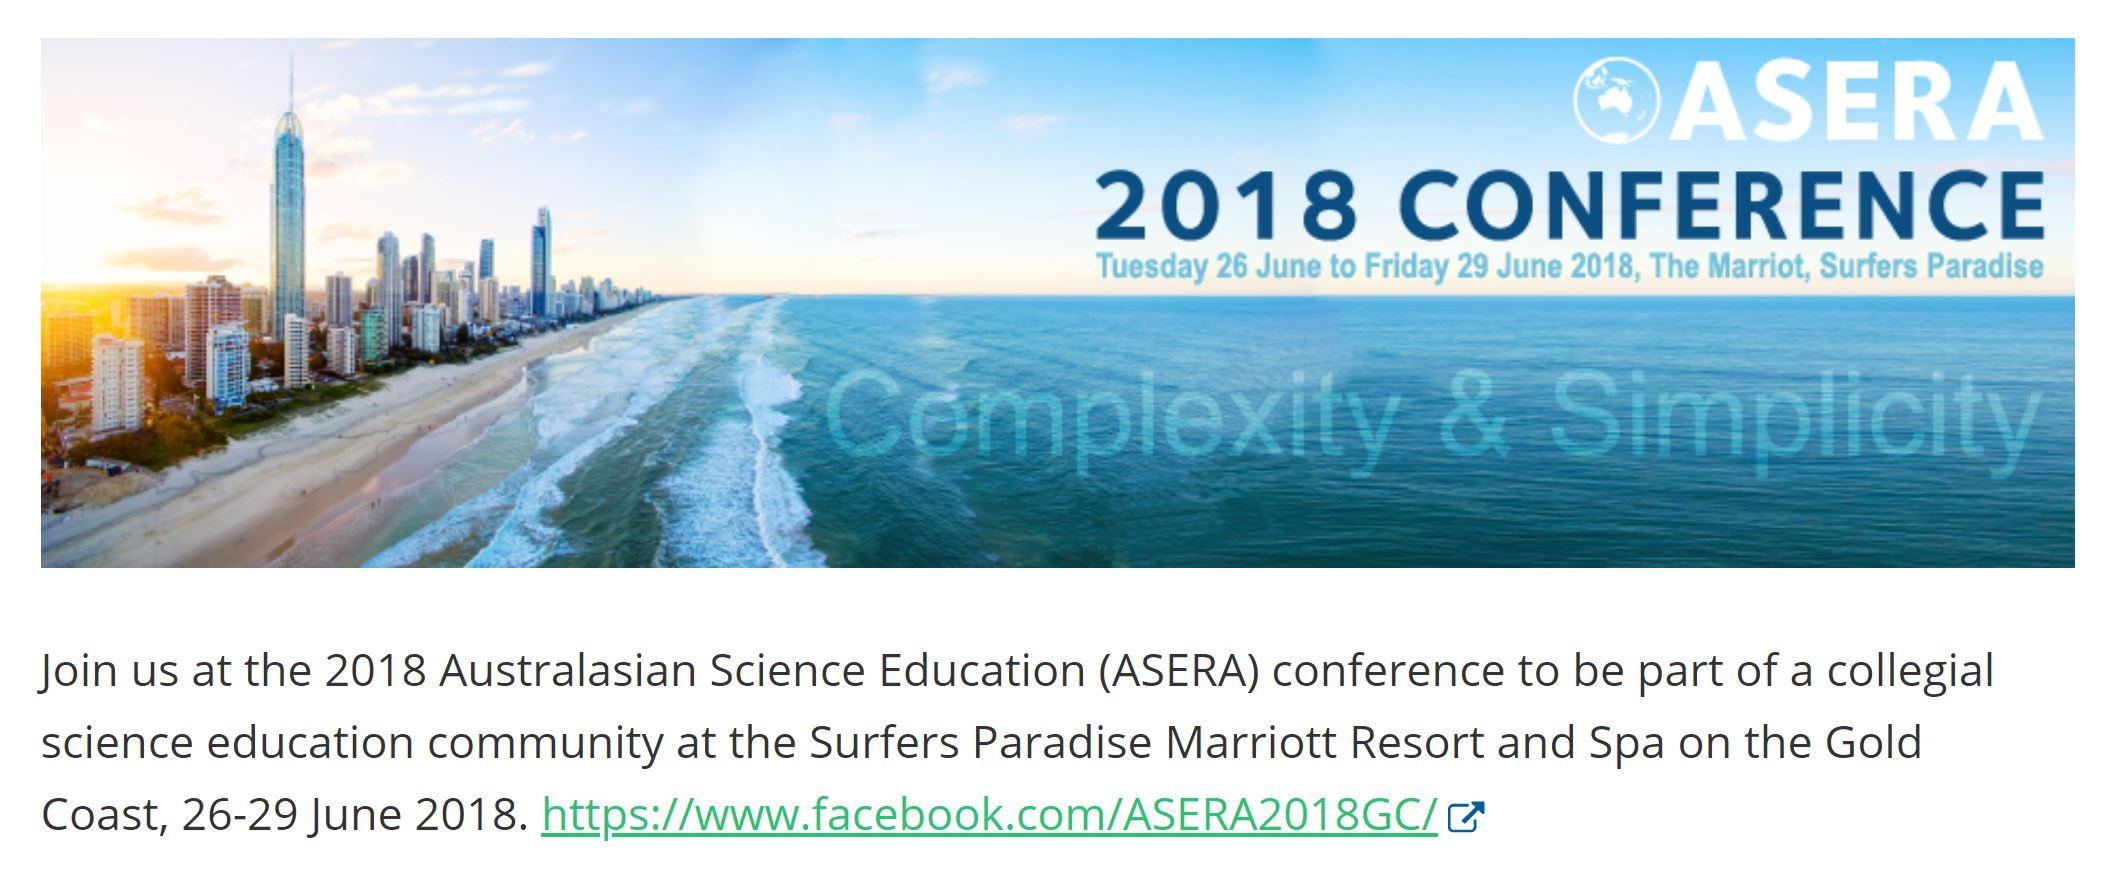 Australasian Science Education Research Association conference 2018. Link  here   Gold Coast, June 26-29 2018.